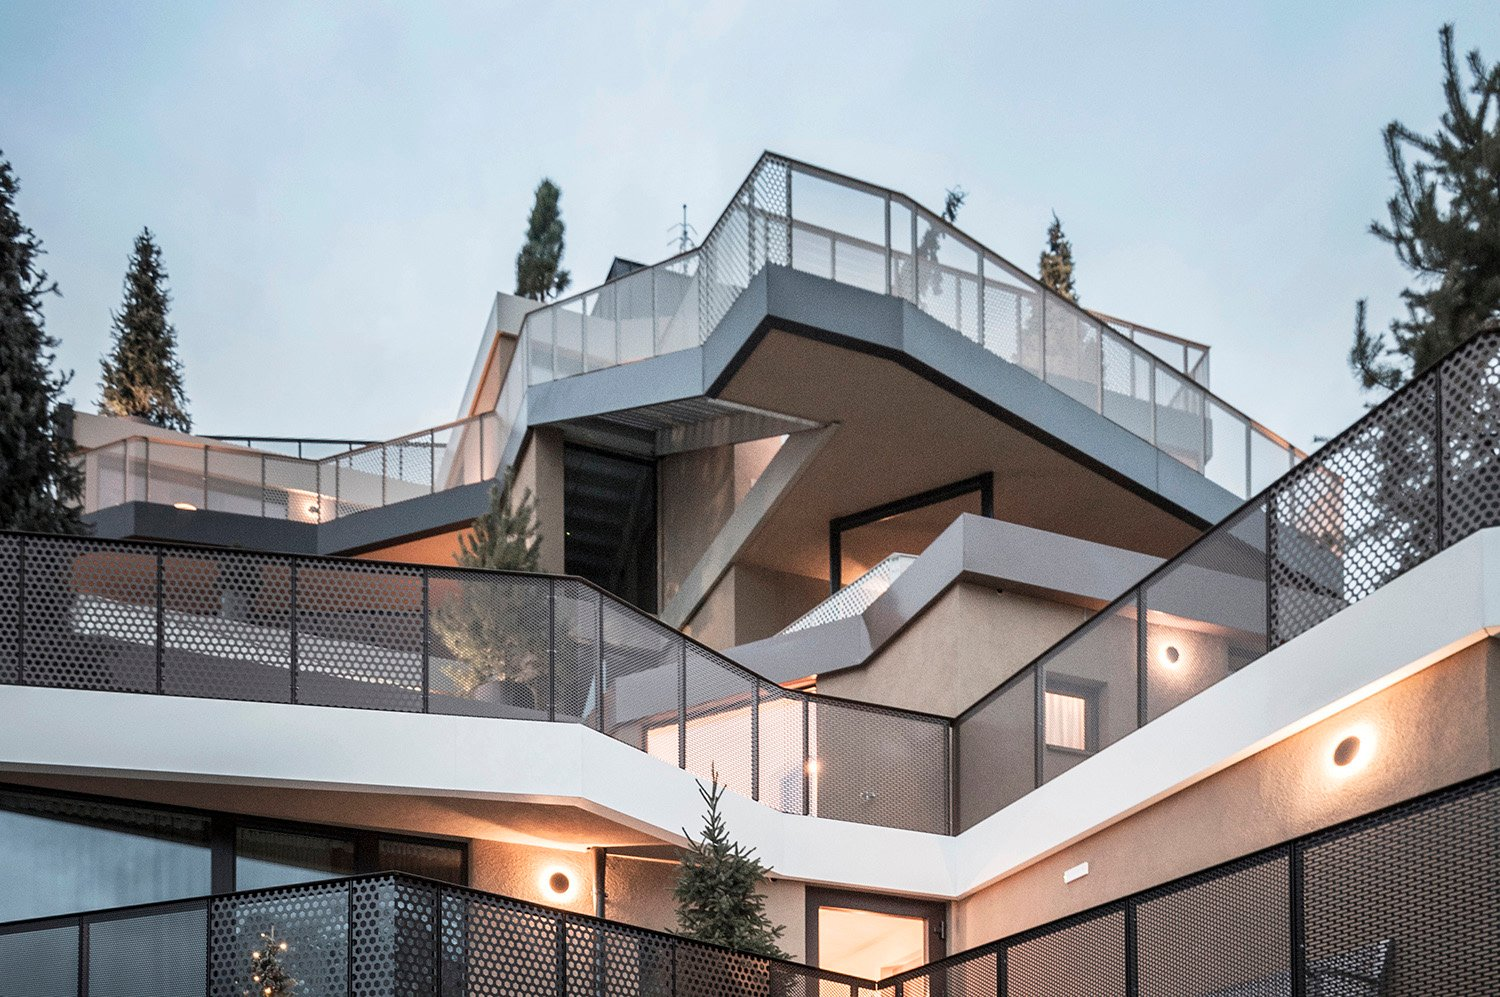 The terraces are merged by vertical elements in the form of stairs and ramps Alex Filz